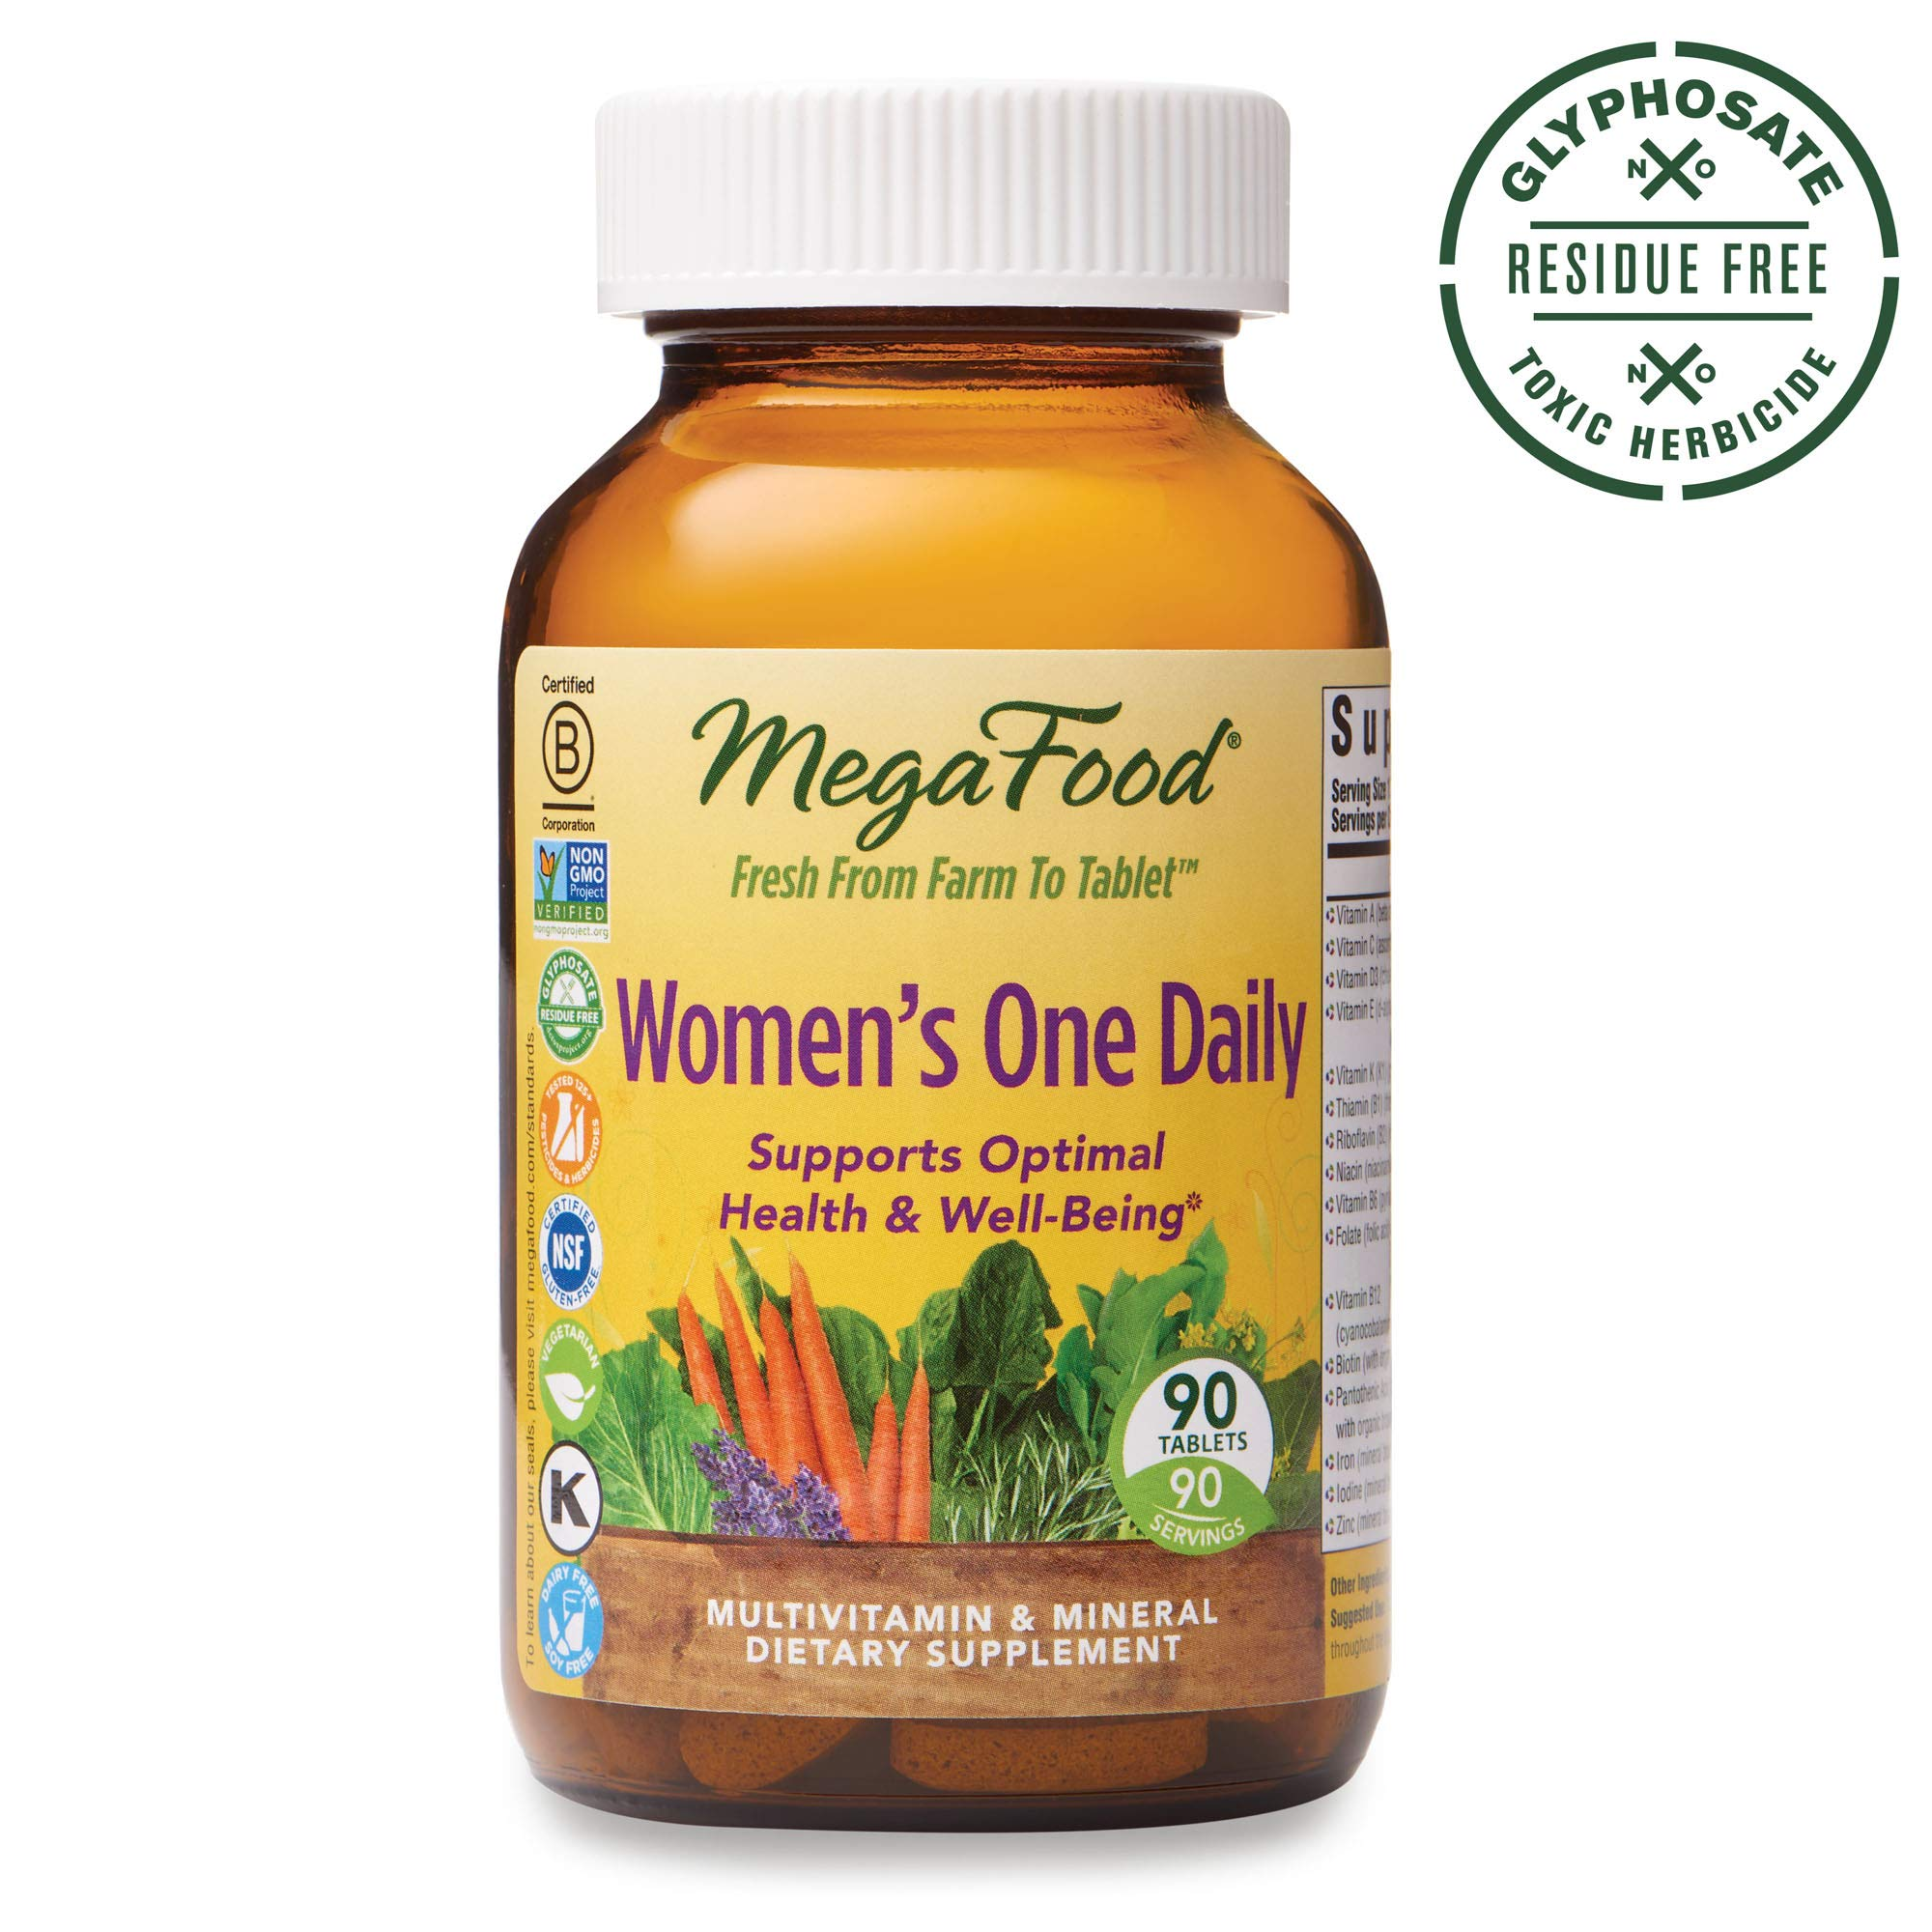 MegaFood, Women's One Daily, Daily Multivitamin and Mineral Dietary Supplement with Vitamins C, D, Folate and Iron, Non-GMO, Vegetarian, 90 Tablets (90 Servings) (FFP) by MegaFood